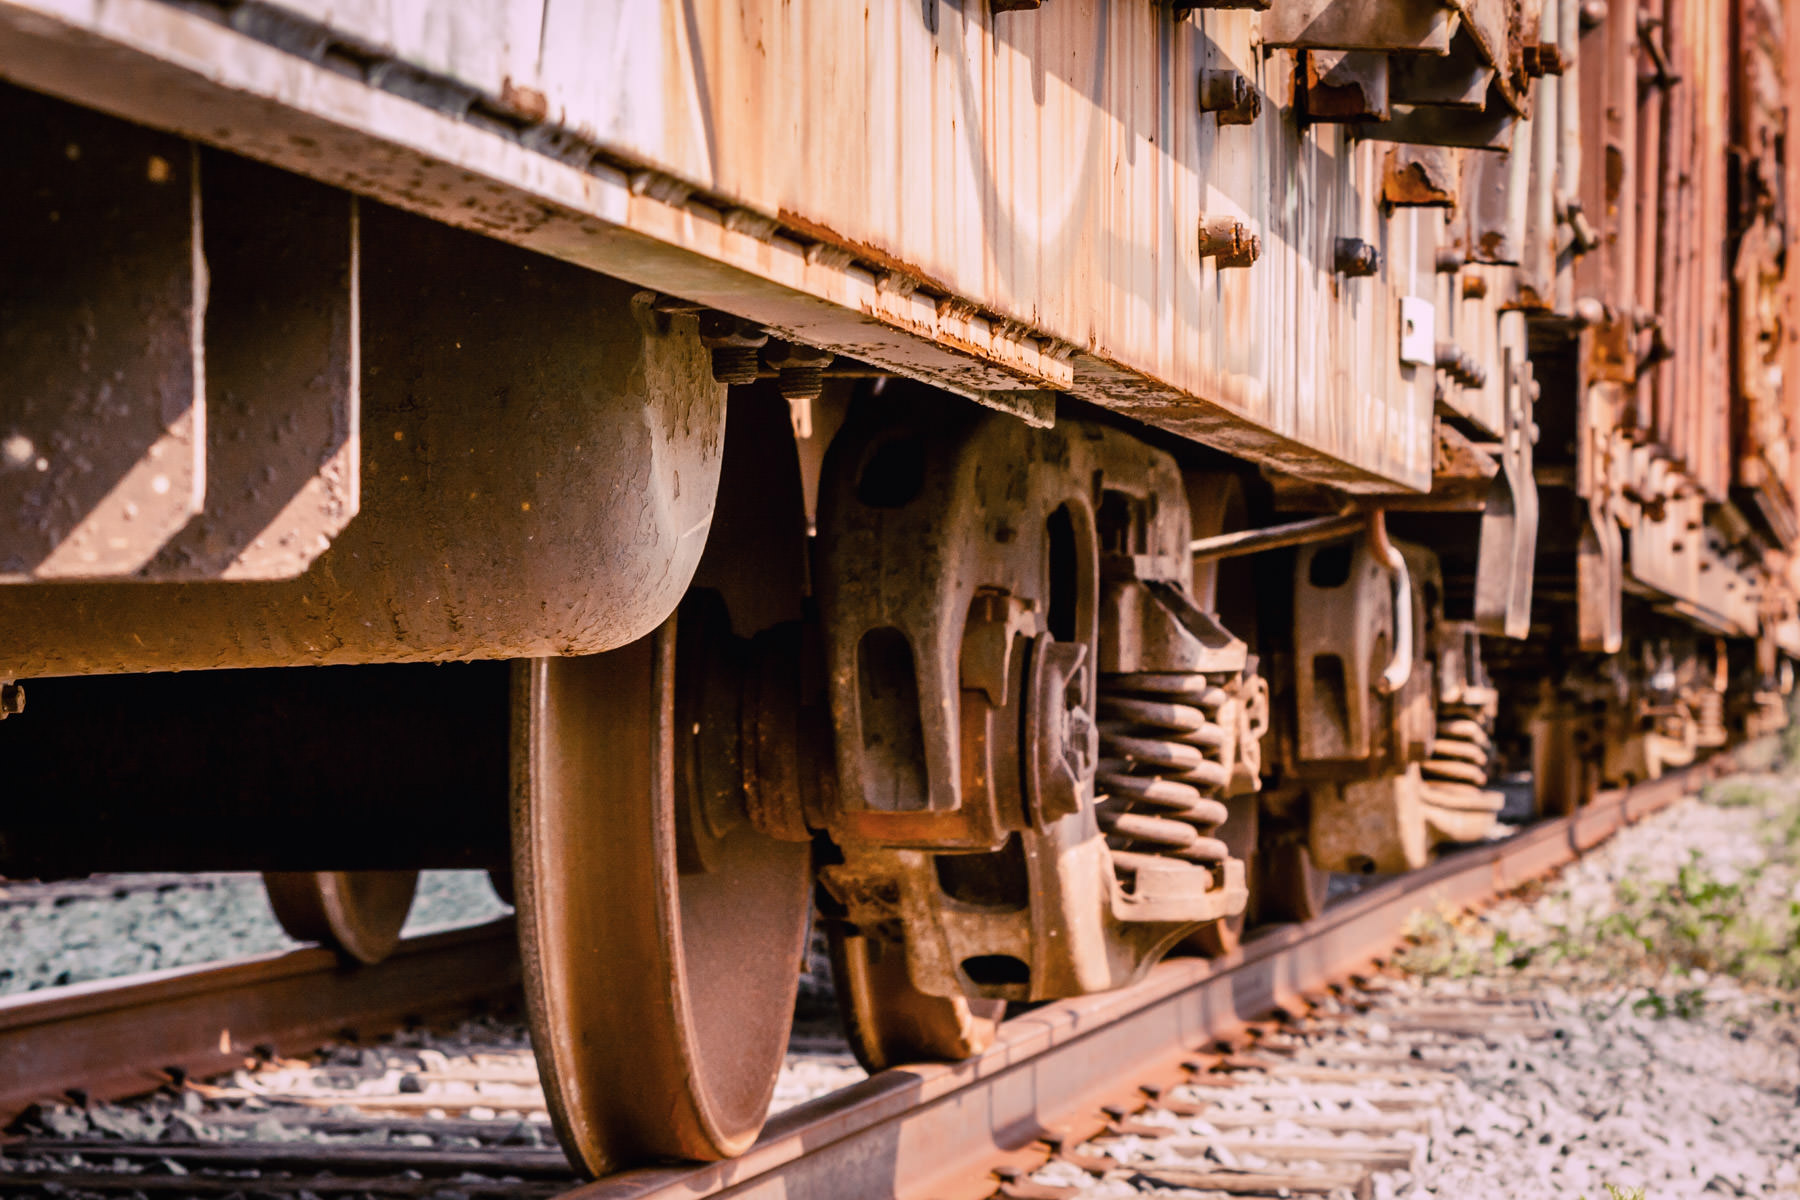 Detail of railroad cars in Farmers Branch, Texas.